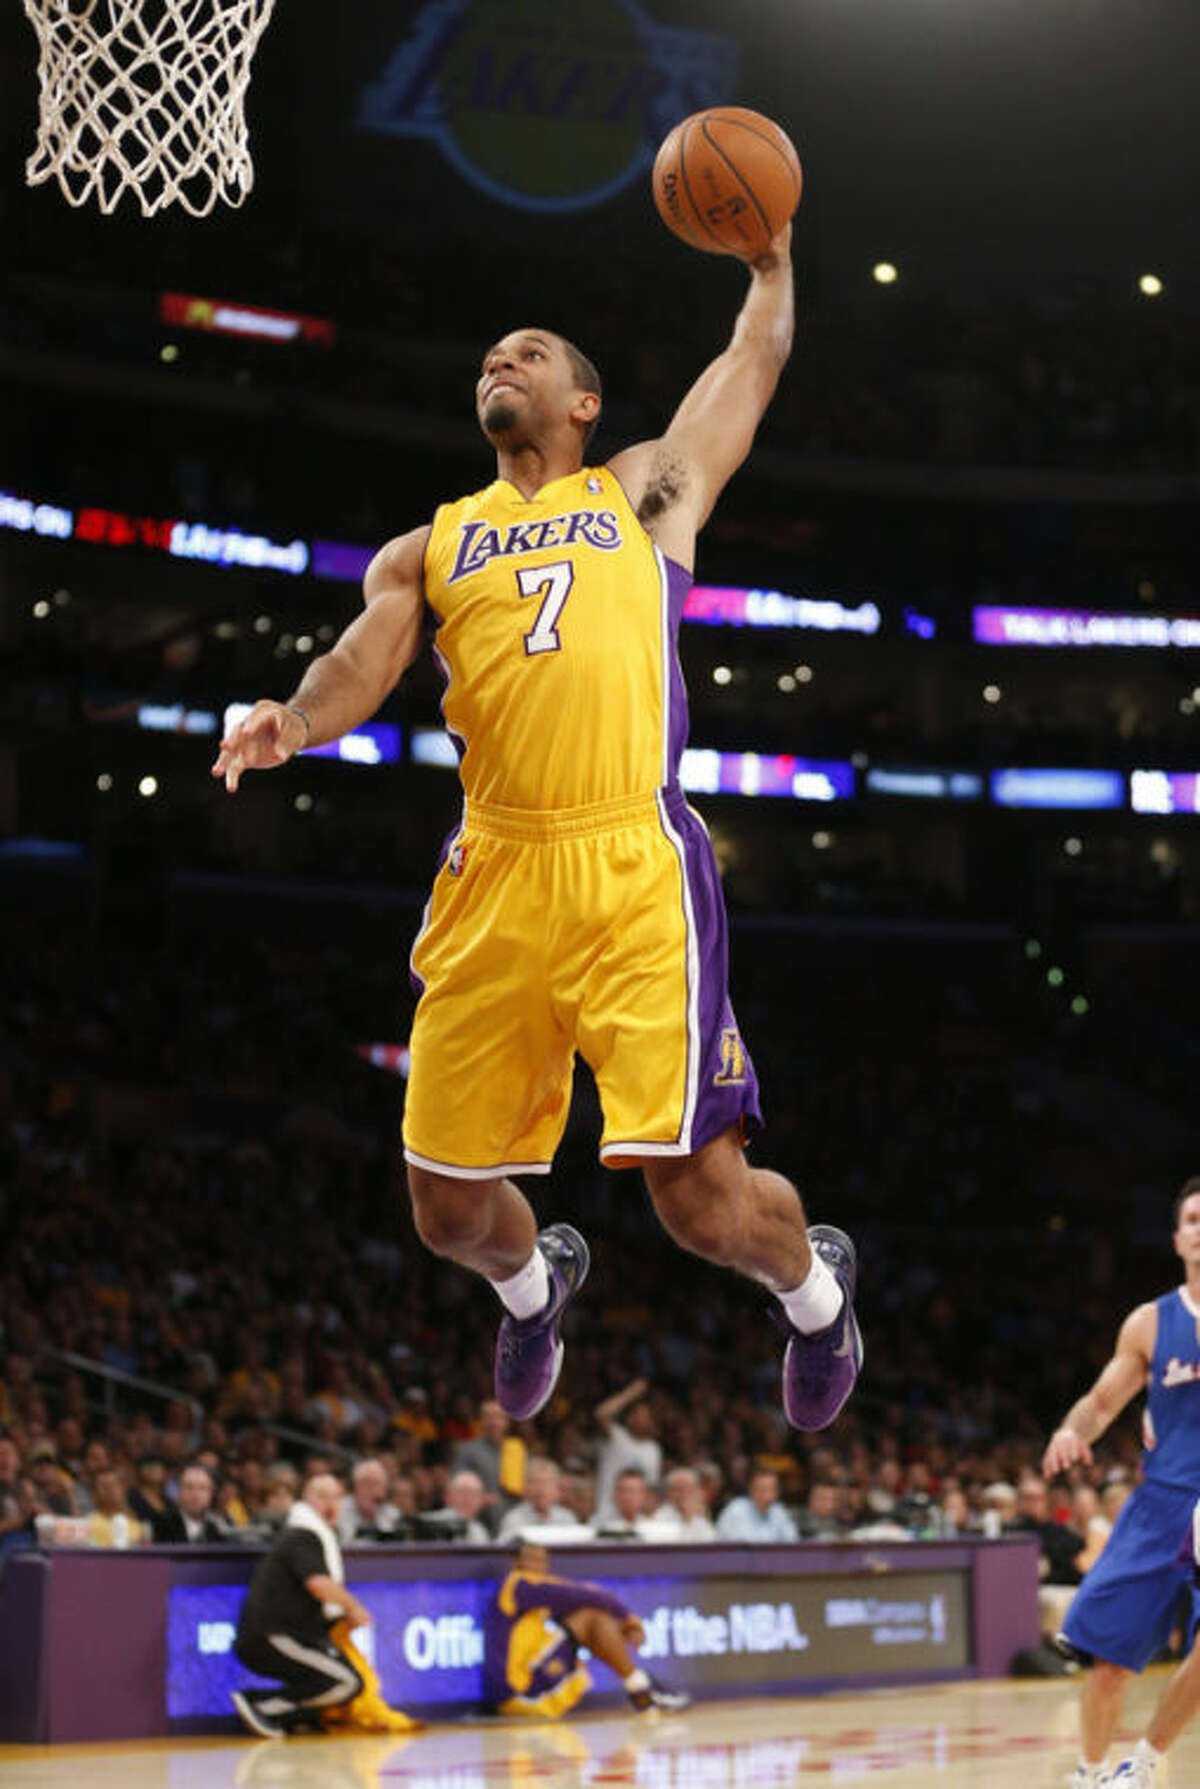 Los Angeles Lakers' Xavier Henry dunks the ball against the Los Angeles Clippers during the first half of an NBA basketball game in Los Angeles, Tuesday, Oct. 29, 2013. (AP Photo/Danny Moloshok)